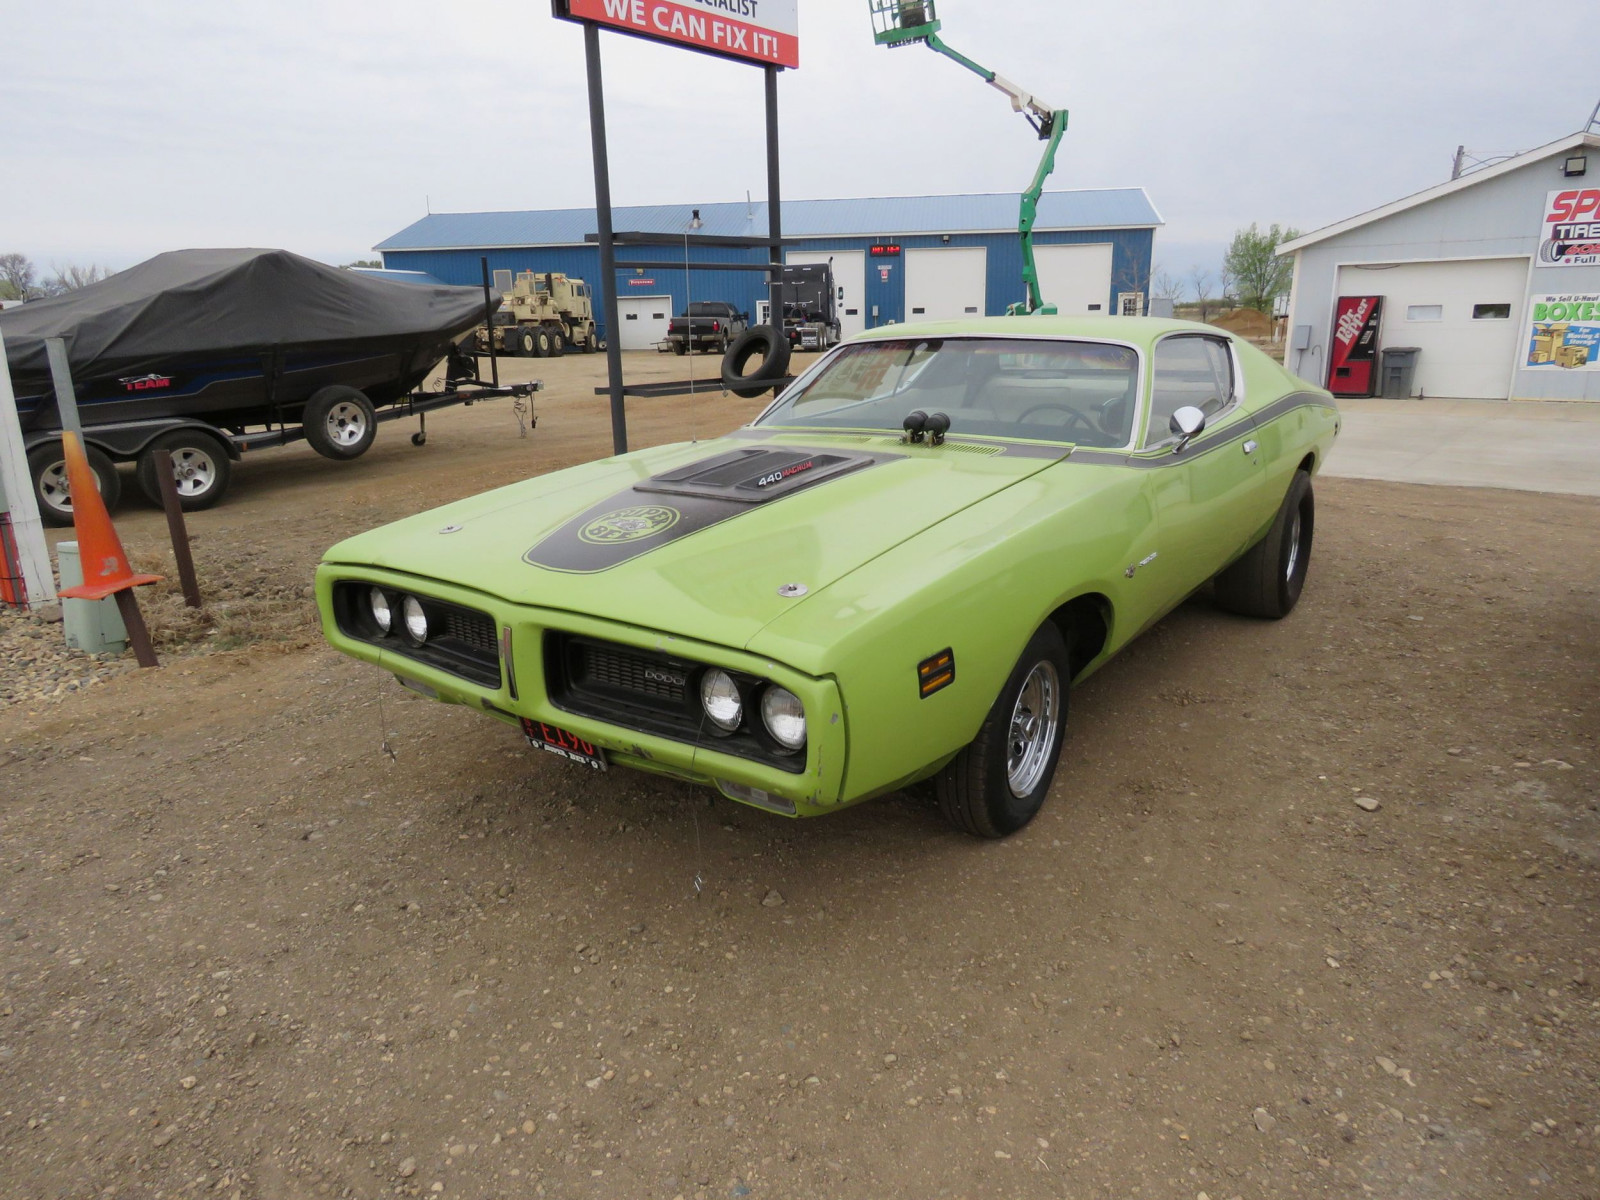 1971 Dodge Super Bee - Image 1